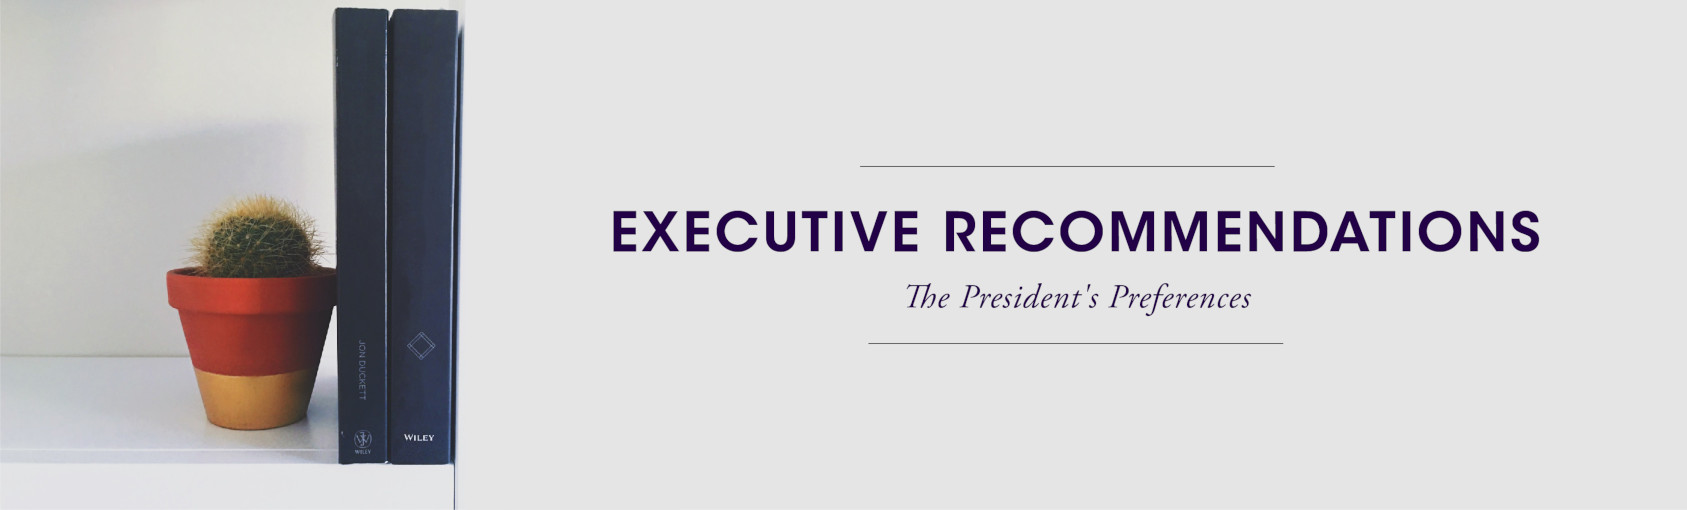 ASI Exec Officer Recommendations: The President's Preferences banner